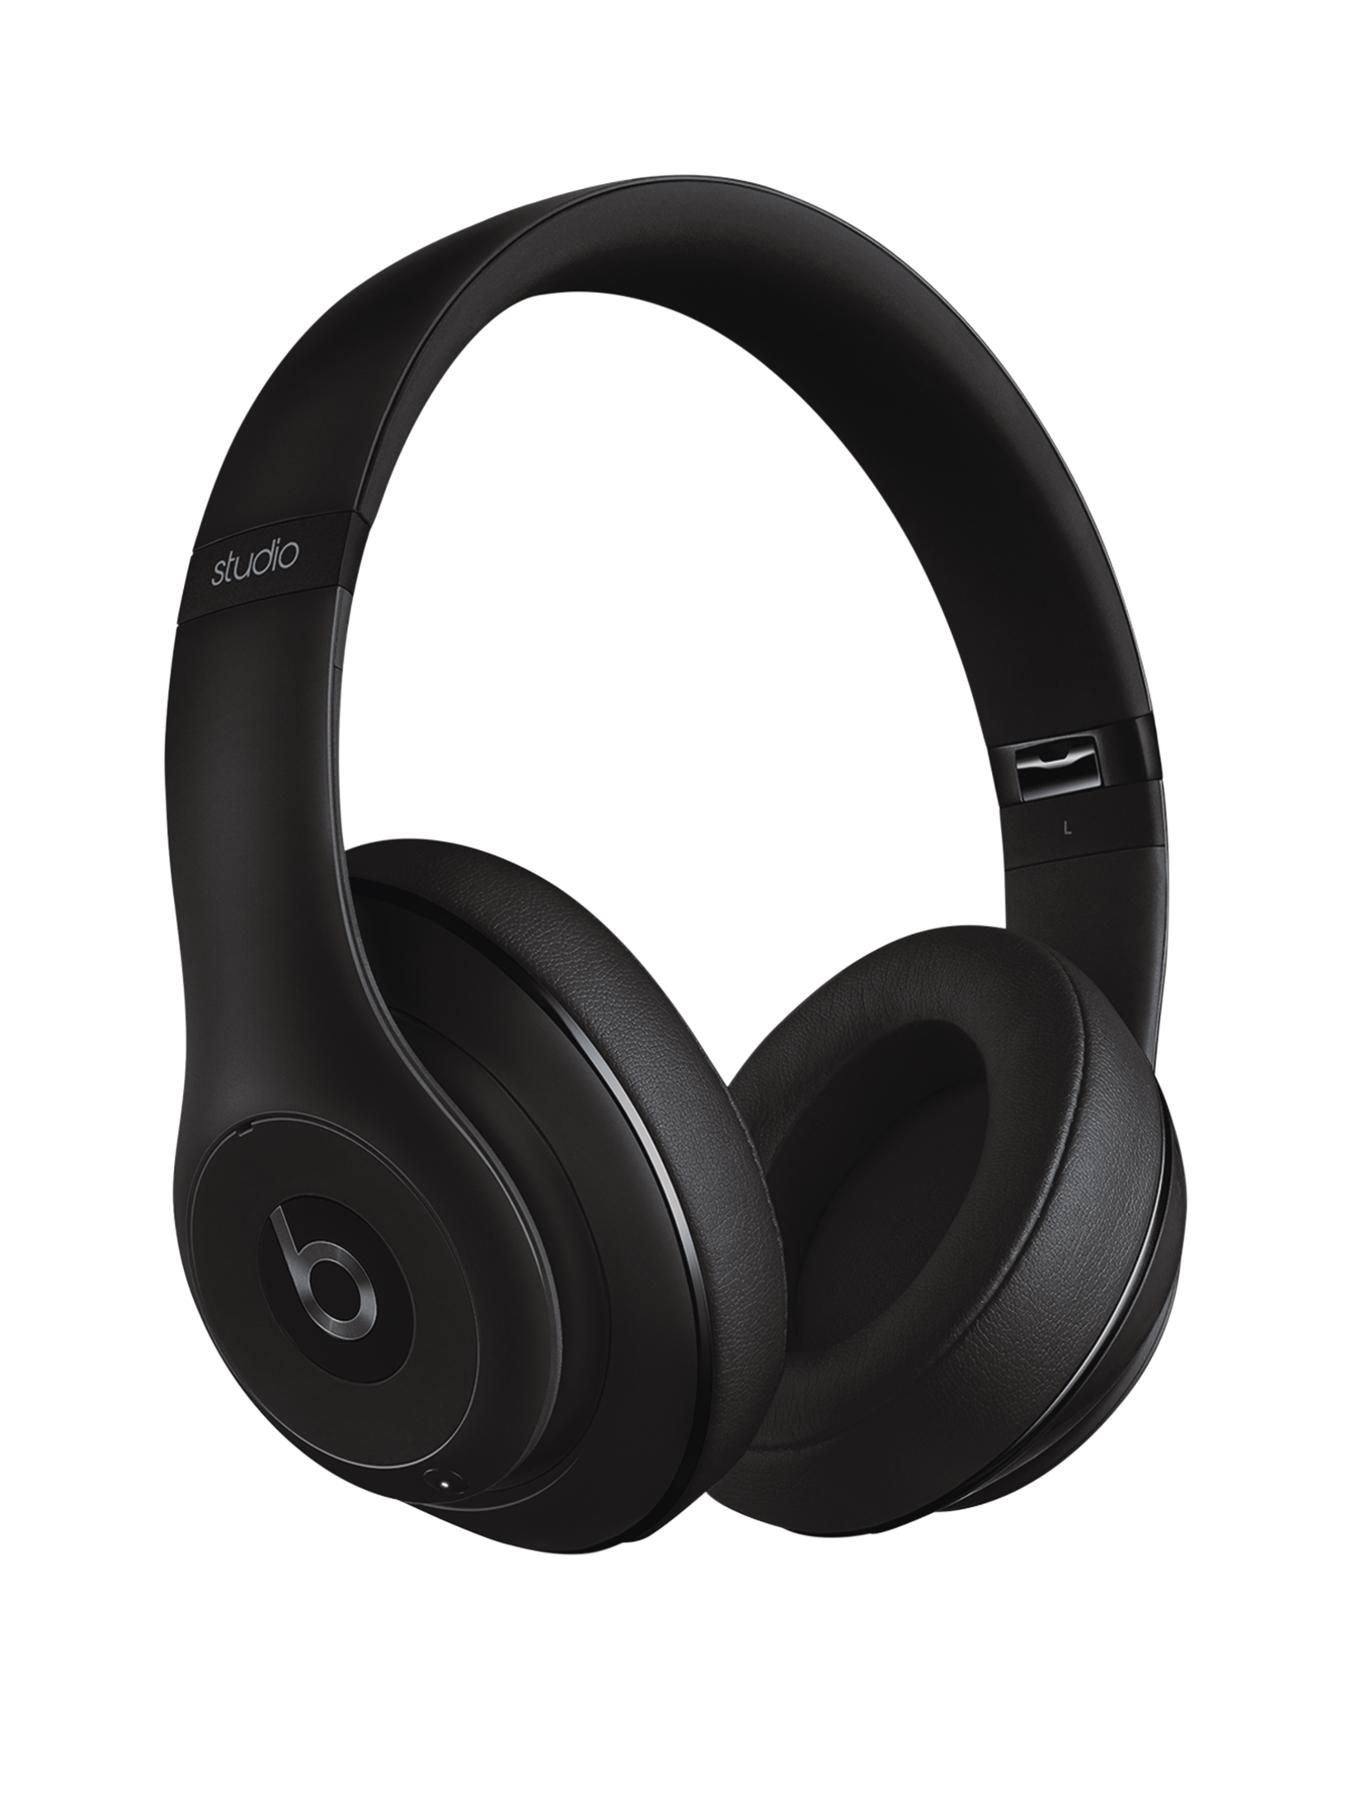 Studio Wireless Headphones - Matte Black